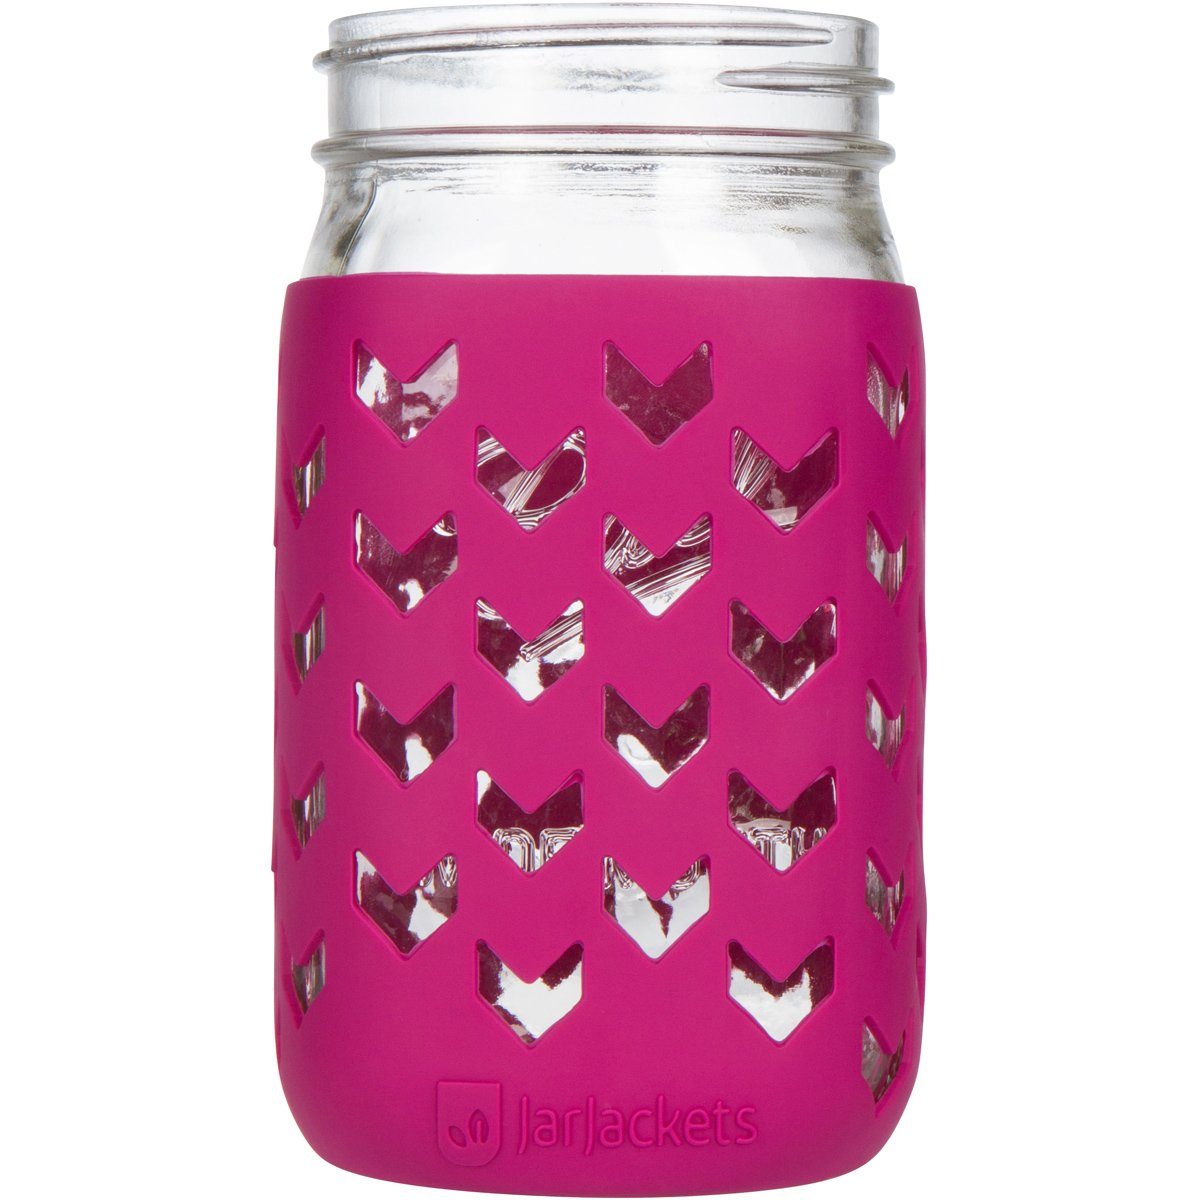 Glass Mason Jar Sleeve - 32oz (1 quart)